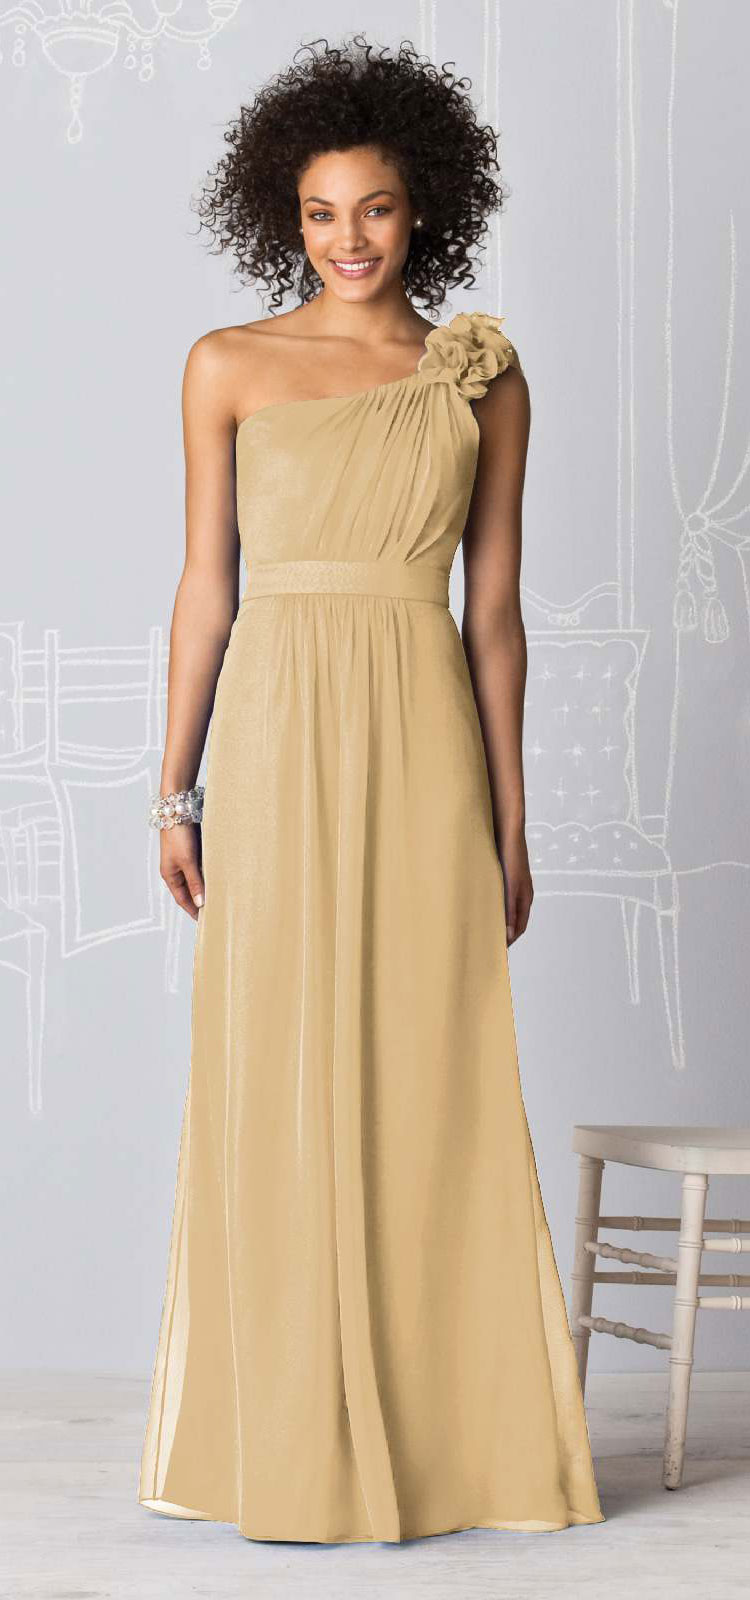 Fashion Friday Champagne Bridesmaid Dresses And Styling